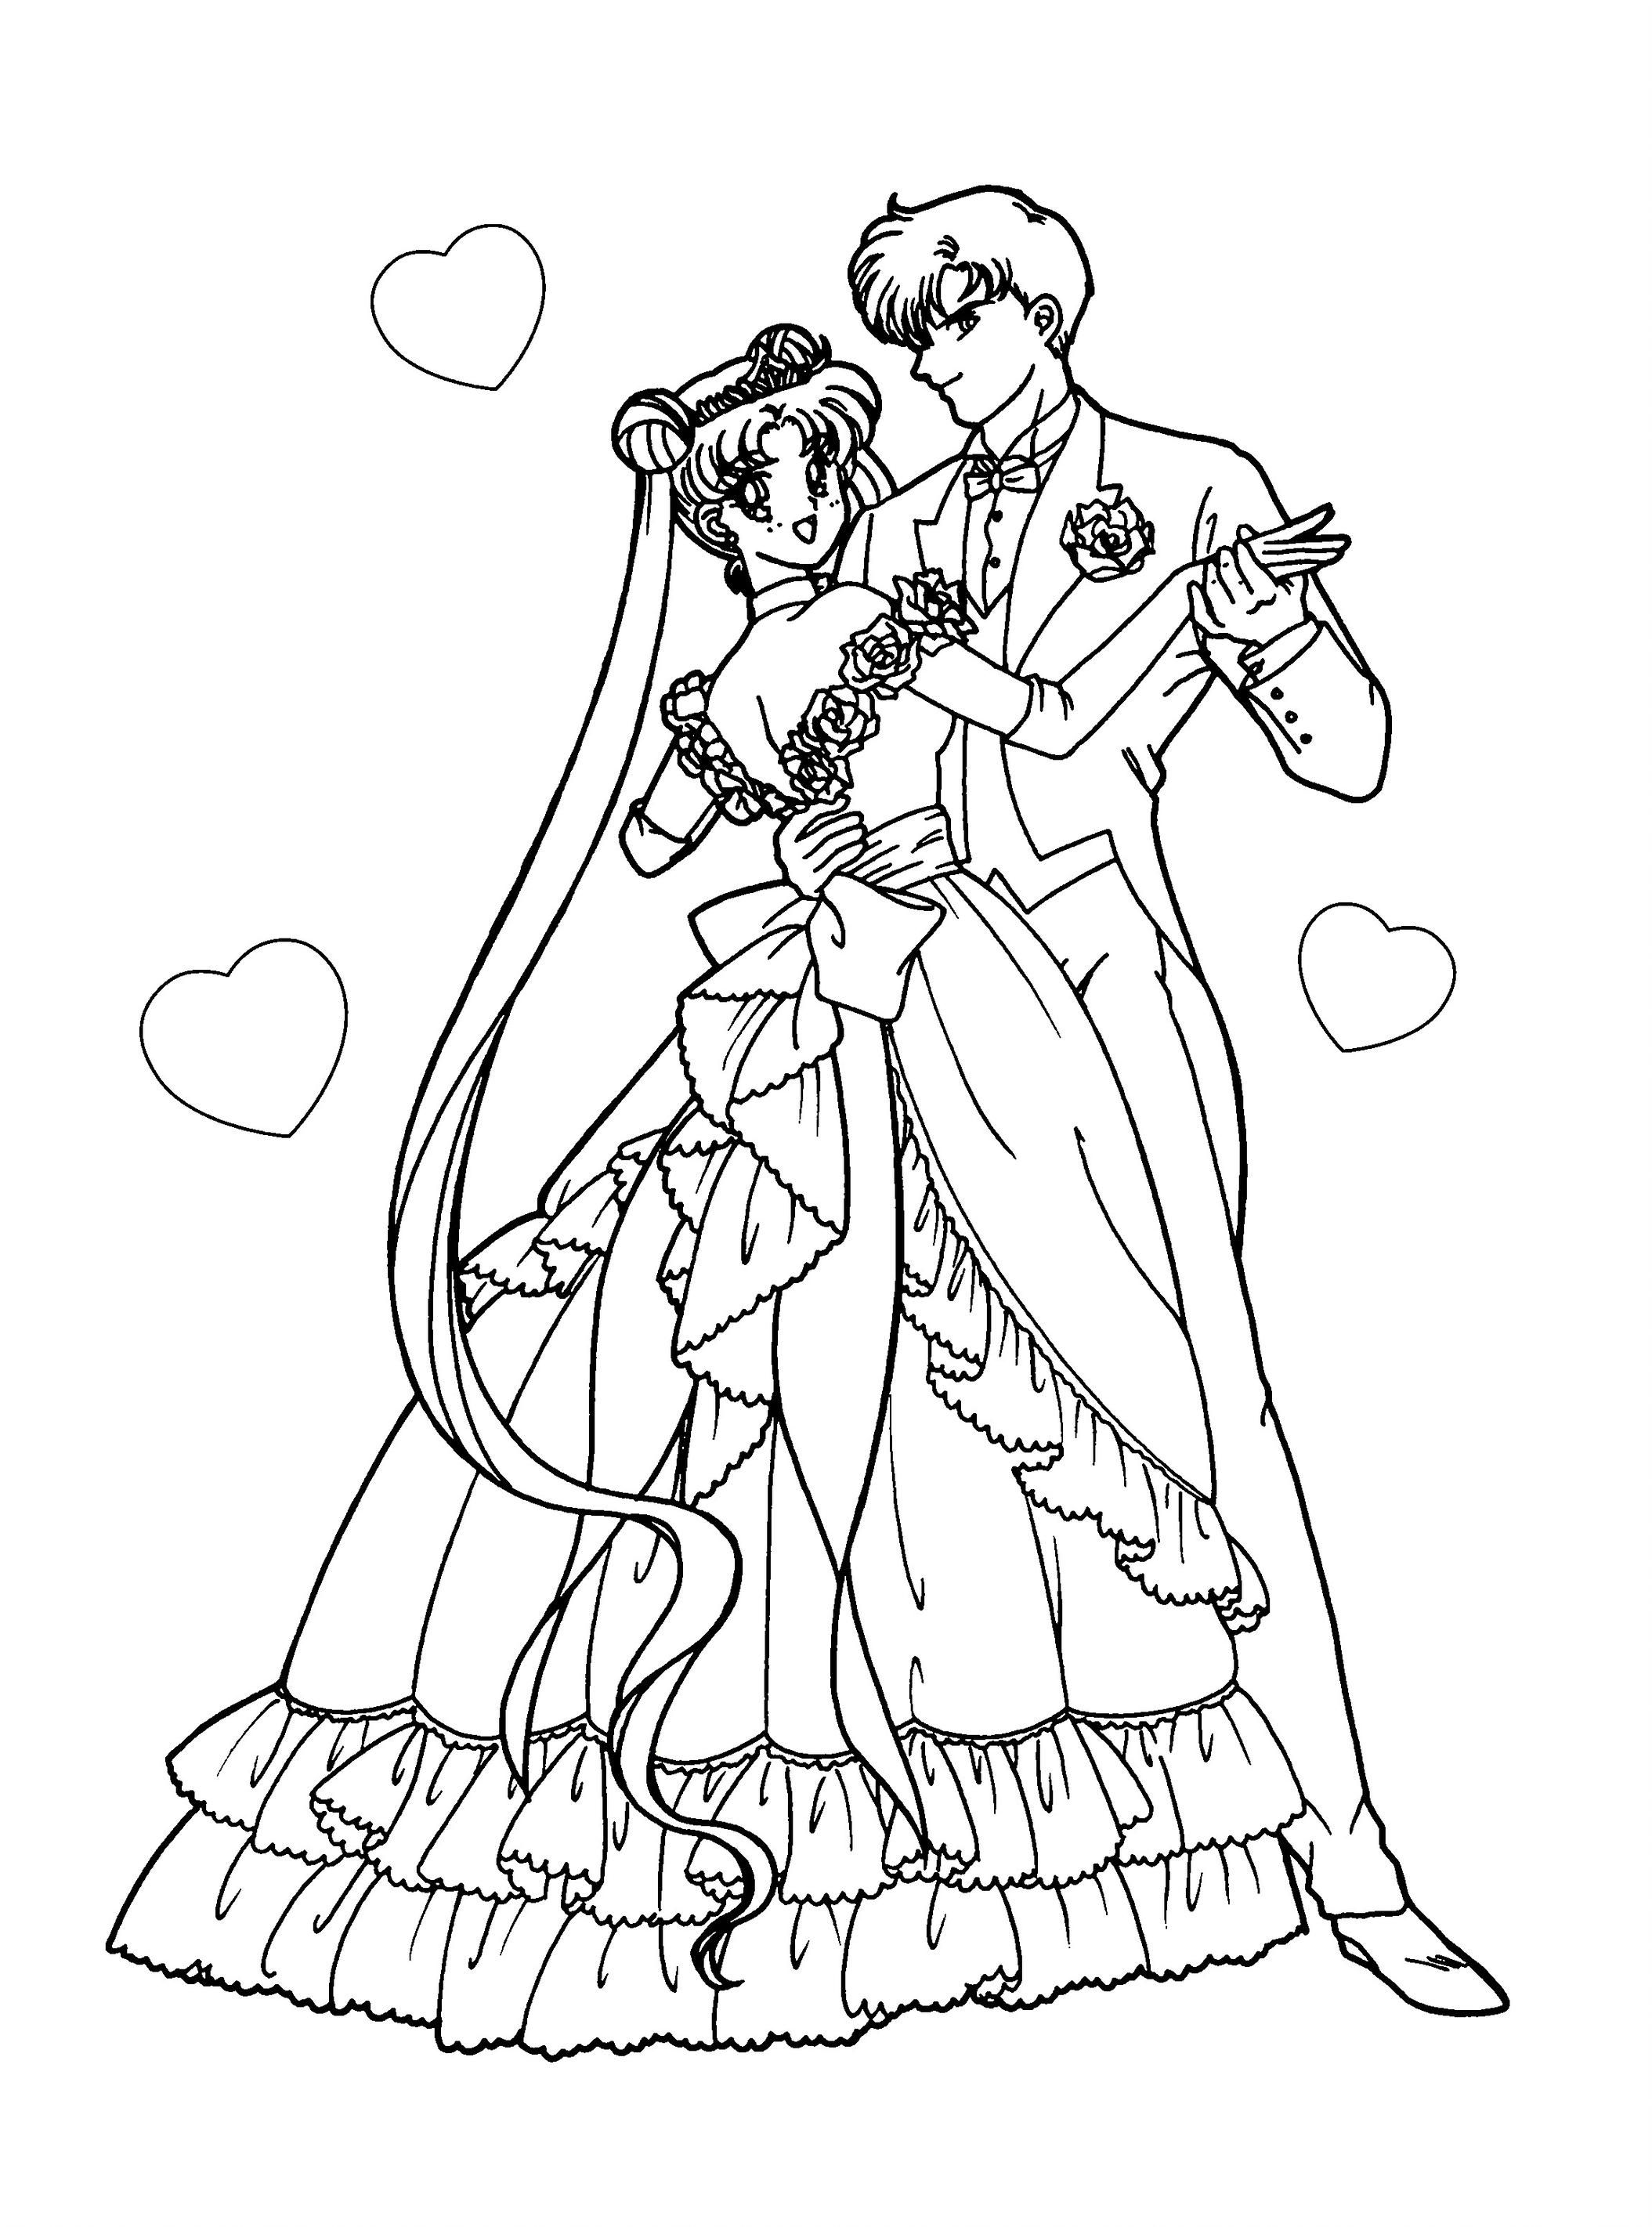 Serena And Darien By Drawingblank2 Sailor Moon Coloring Pages Moon Coloring Pages Sailor Moon Wedding